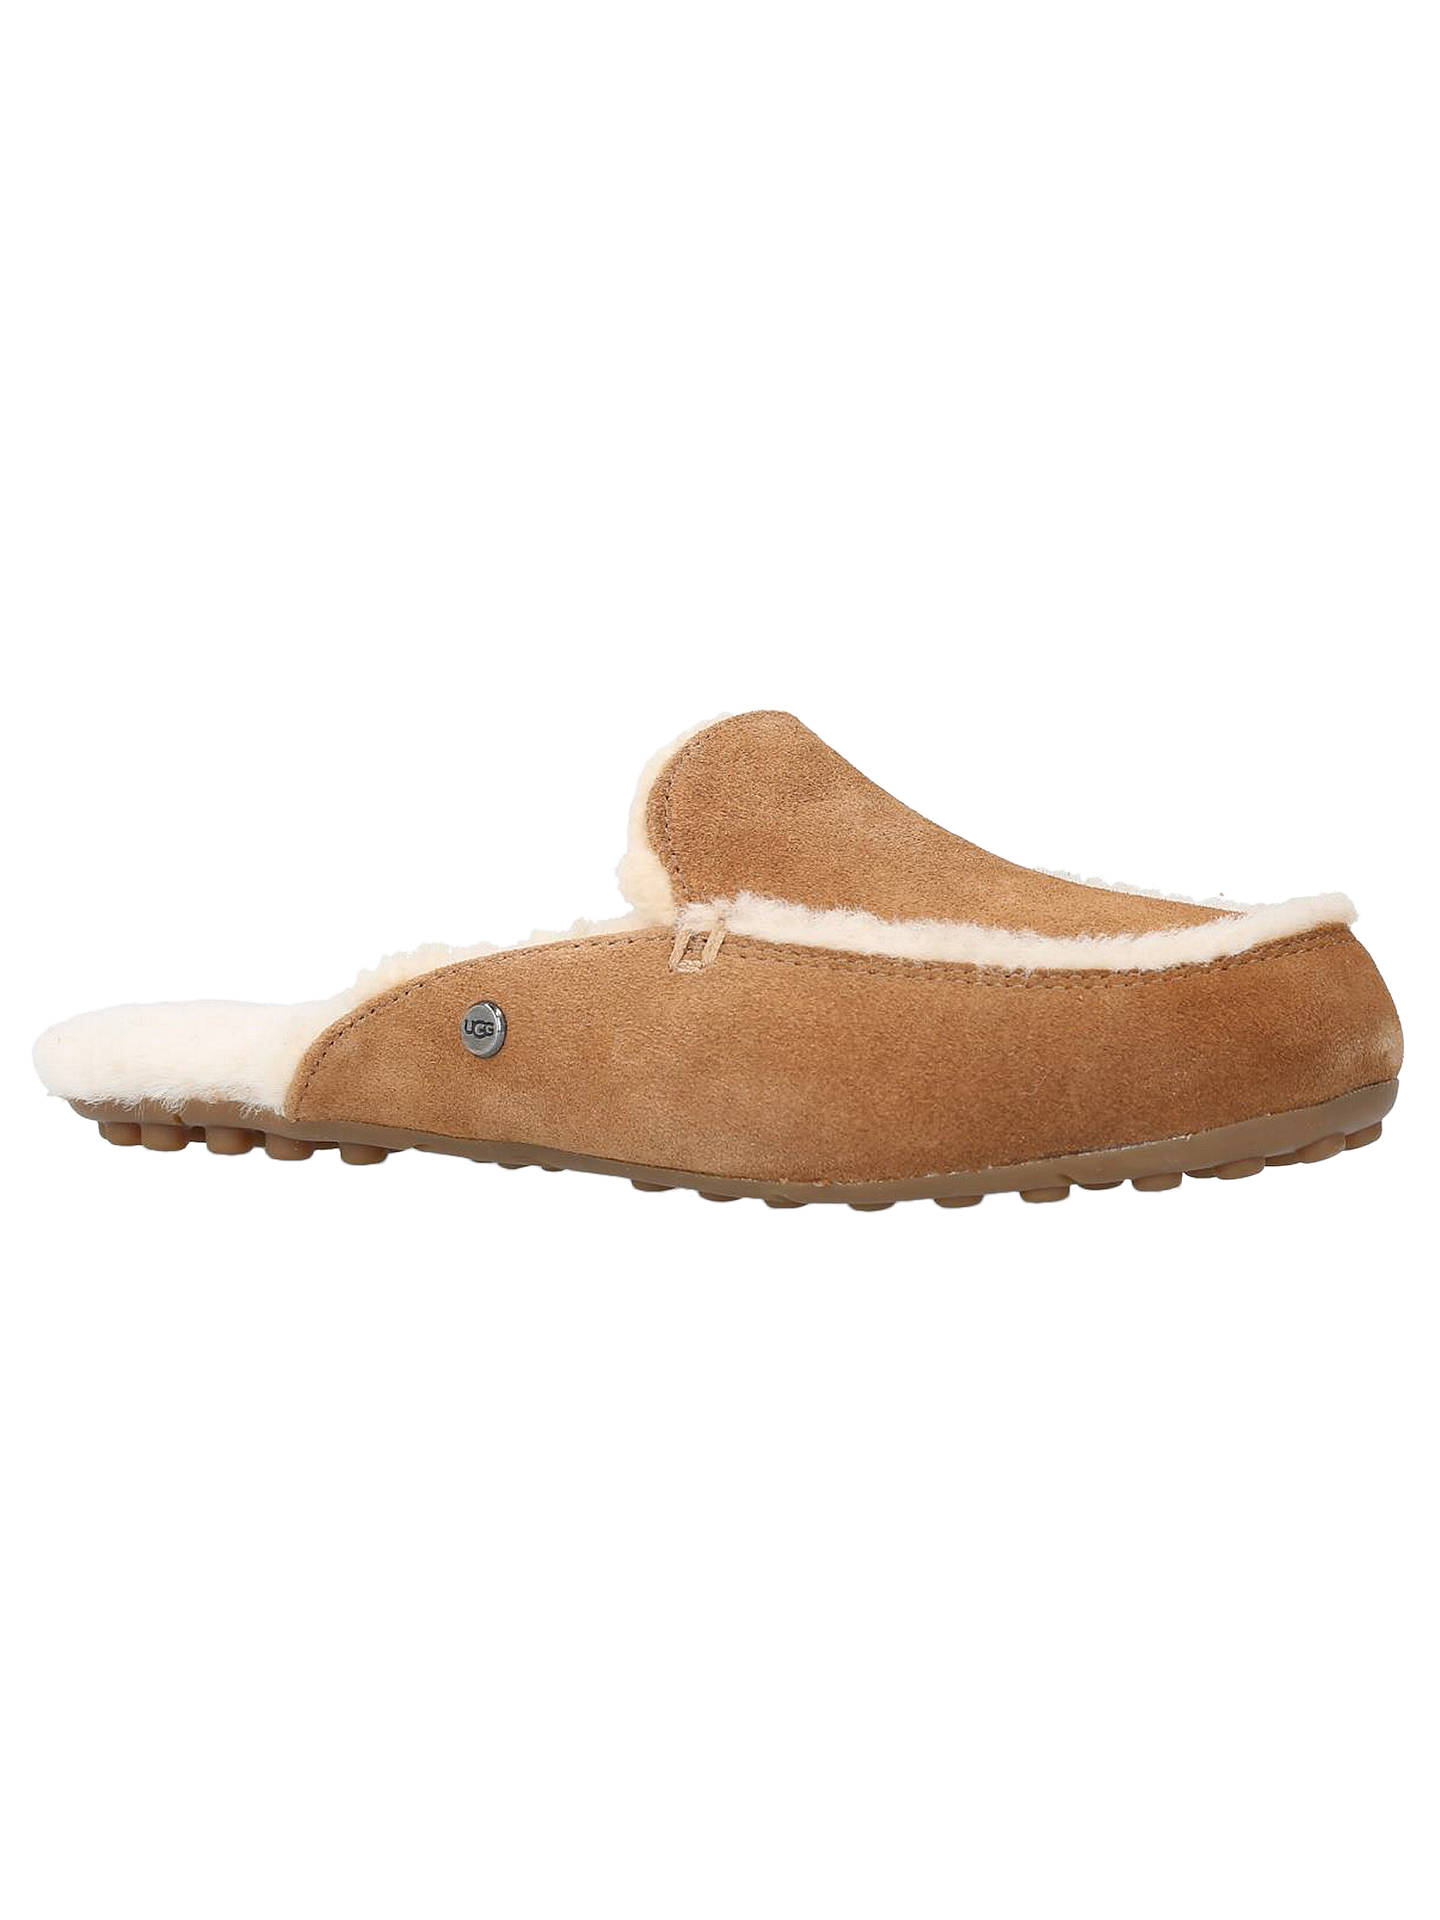 ee587ae3b0b UGG Lane Mule Slippers at John Lewis & Partners